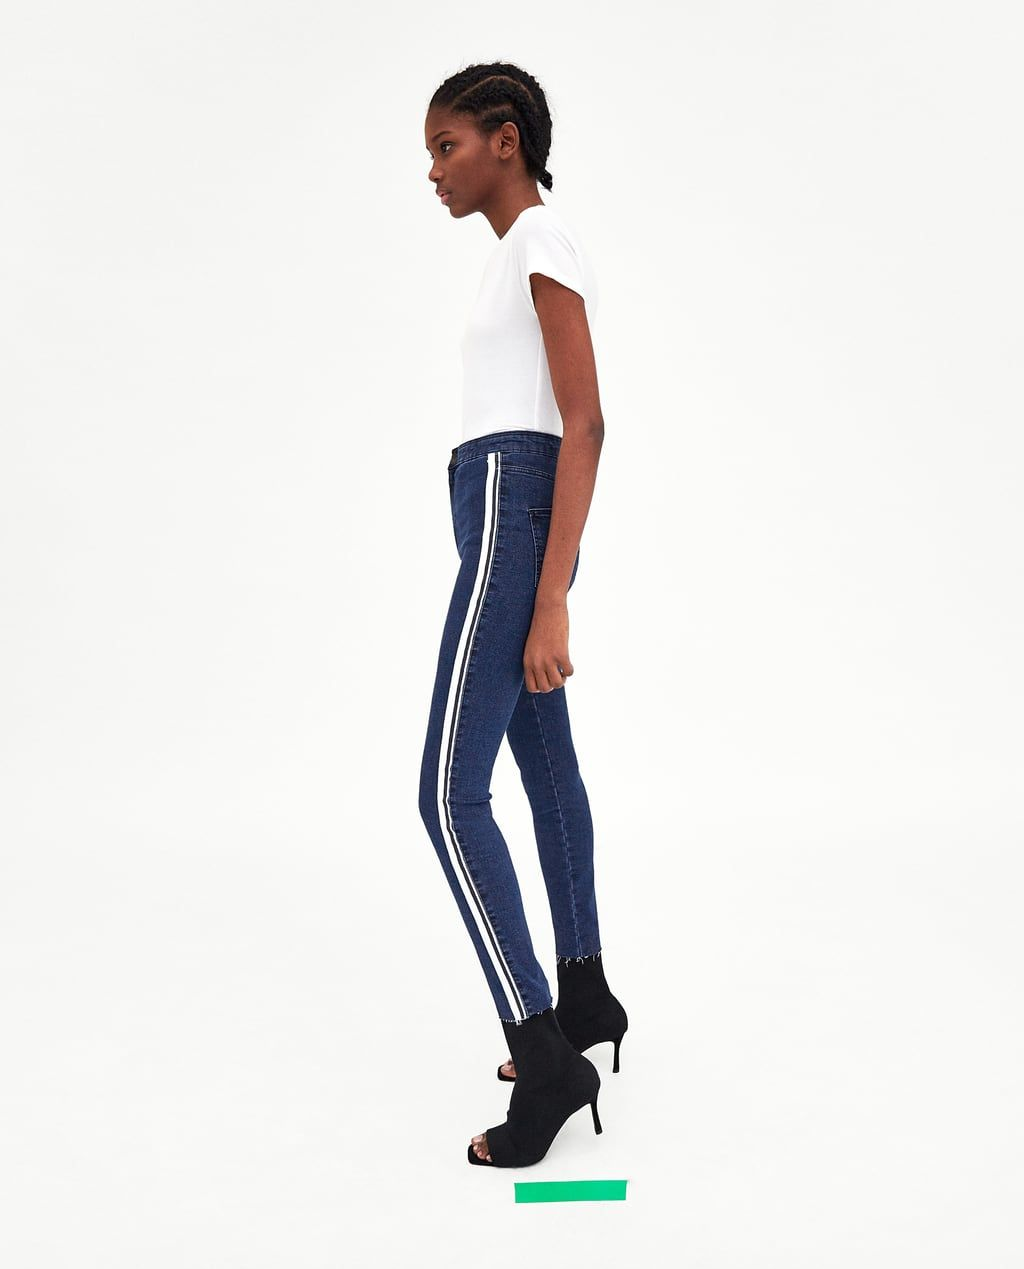 b943b9f3 Image 4 of HI-RISE 'SHAPER' JEGGINGS WITH SIDE STRIPE DETAIL from ...